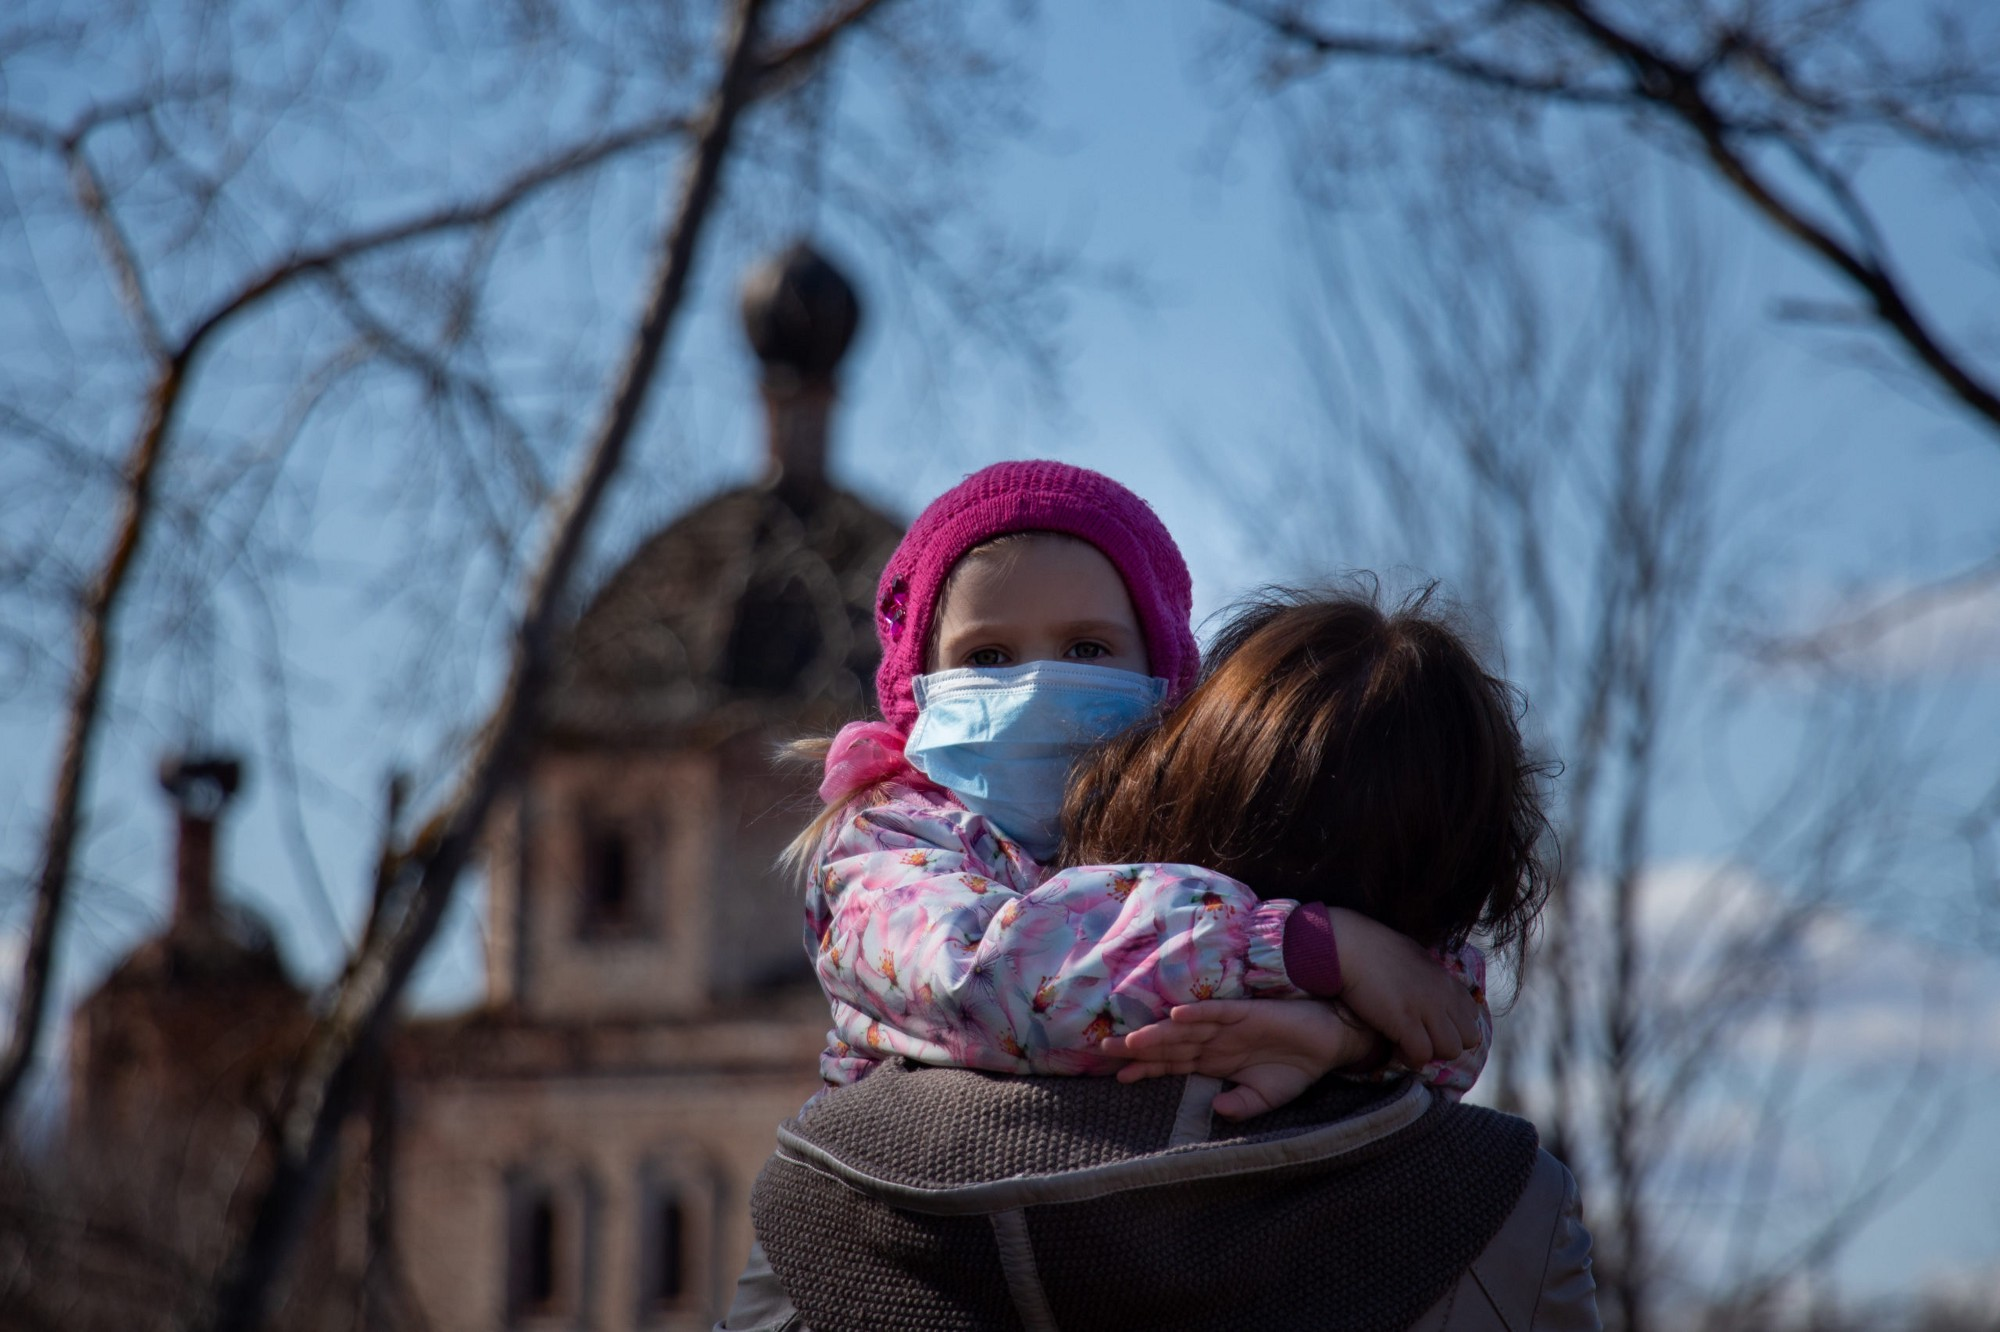 Child being held by a woman in the fall. Child is wearing a mask.